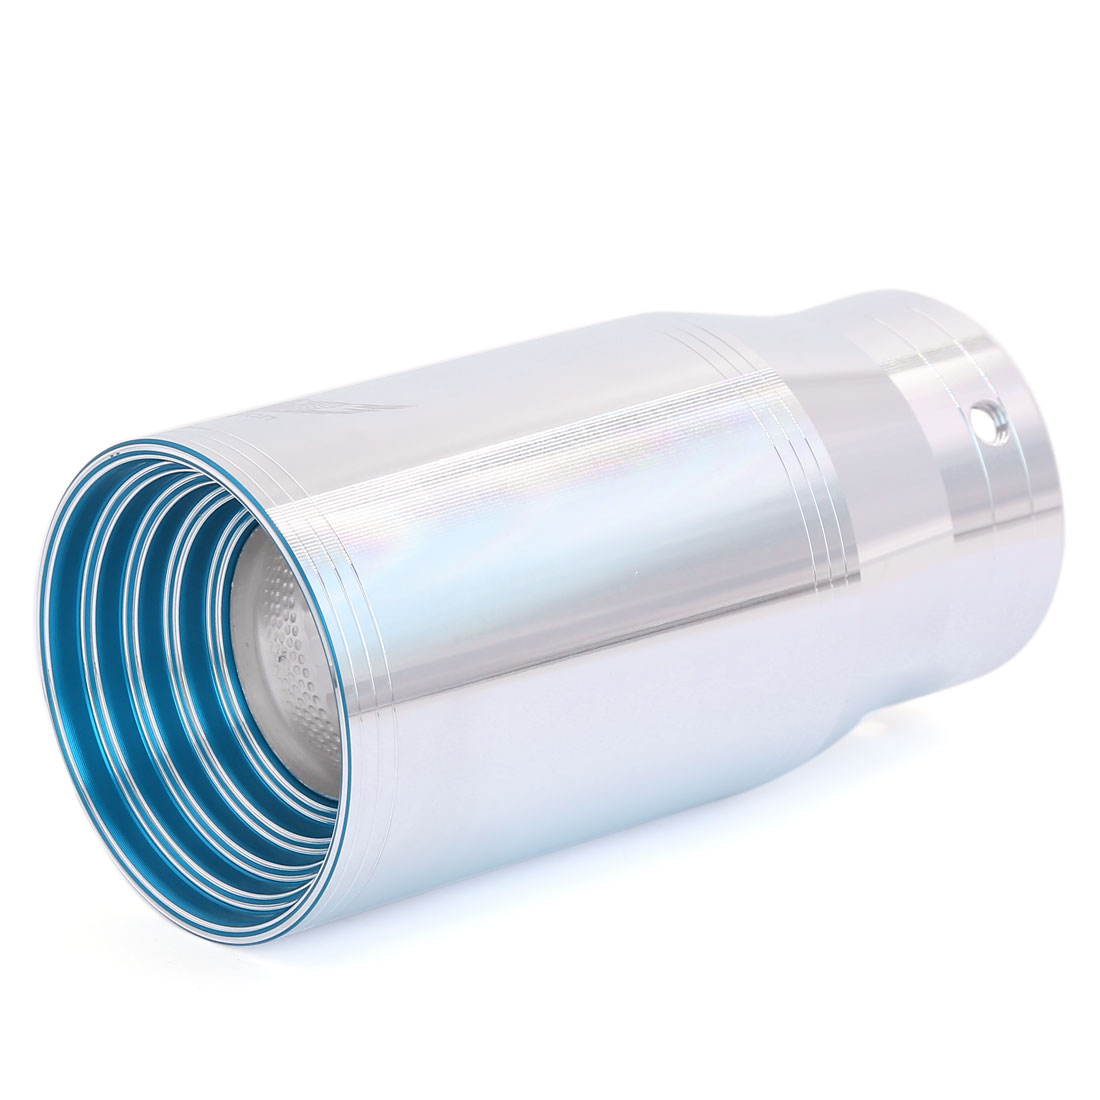 67mm Inlet Dia Stainless Steel Car Exhaust Pipe Tail Throat Muffler Tip